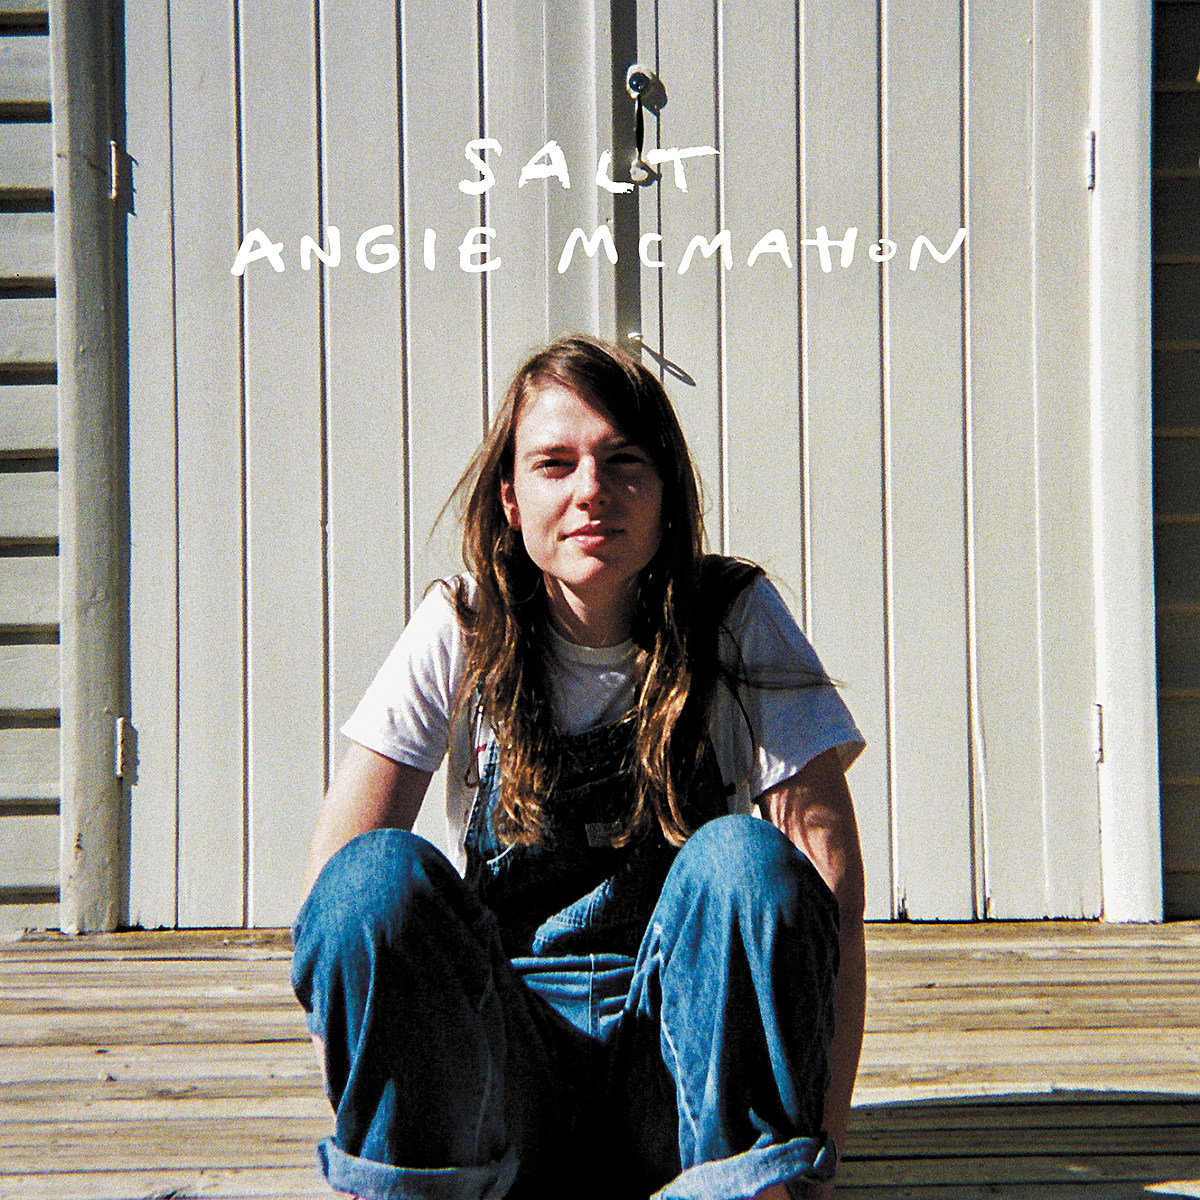 """Angie McMahon announces debut album, touring (stream """"And I Am A Woman"""")"""